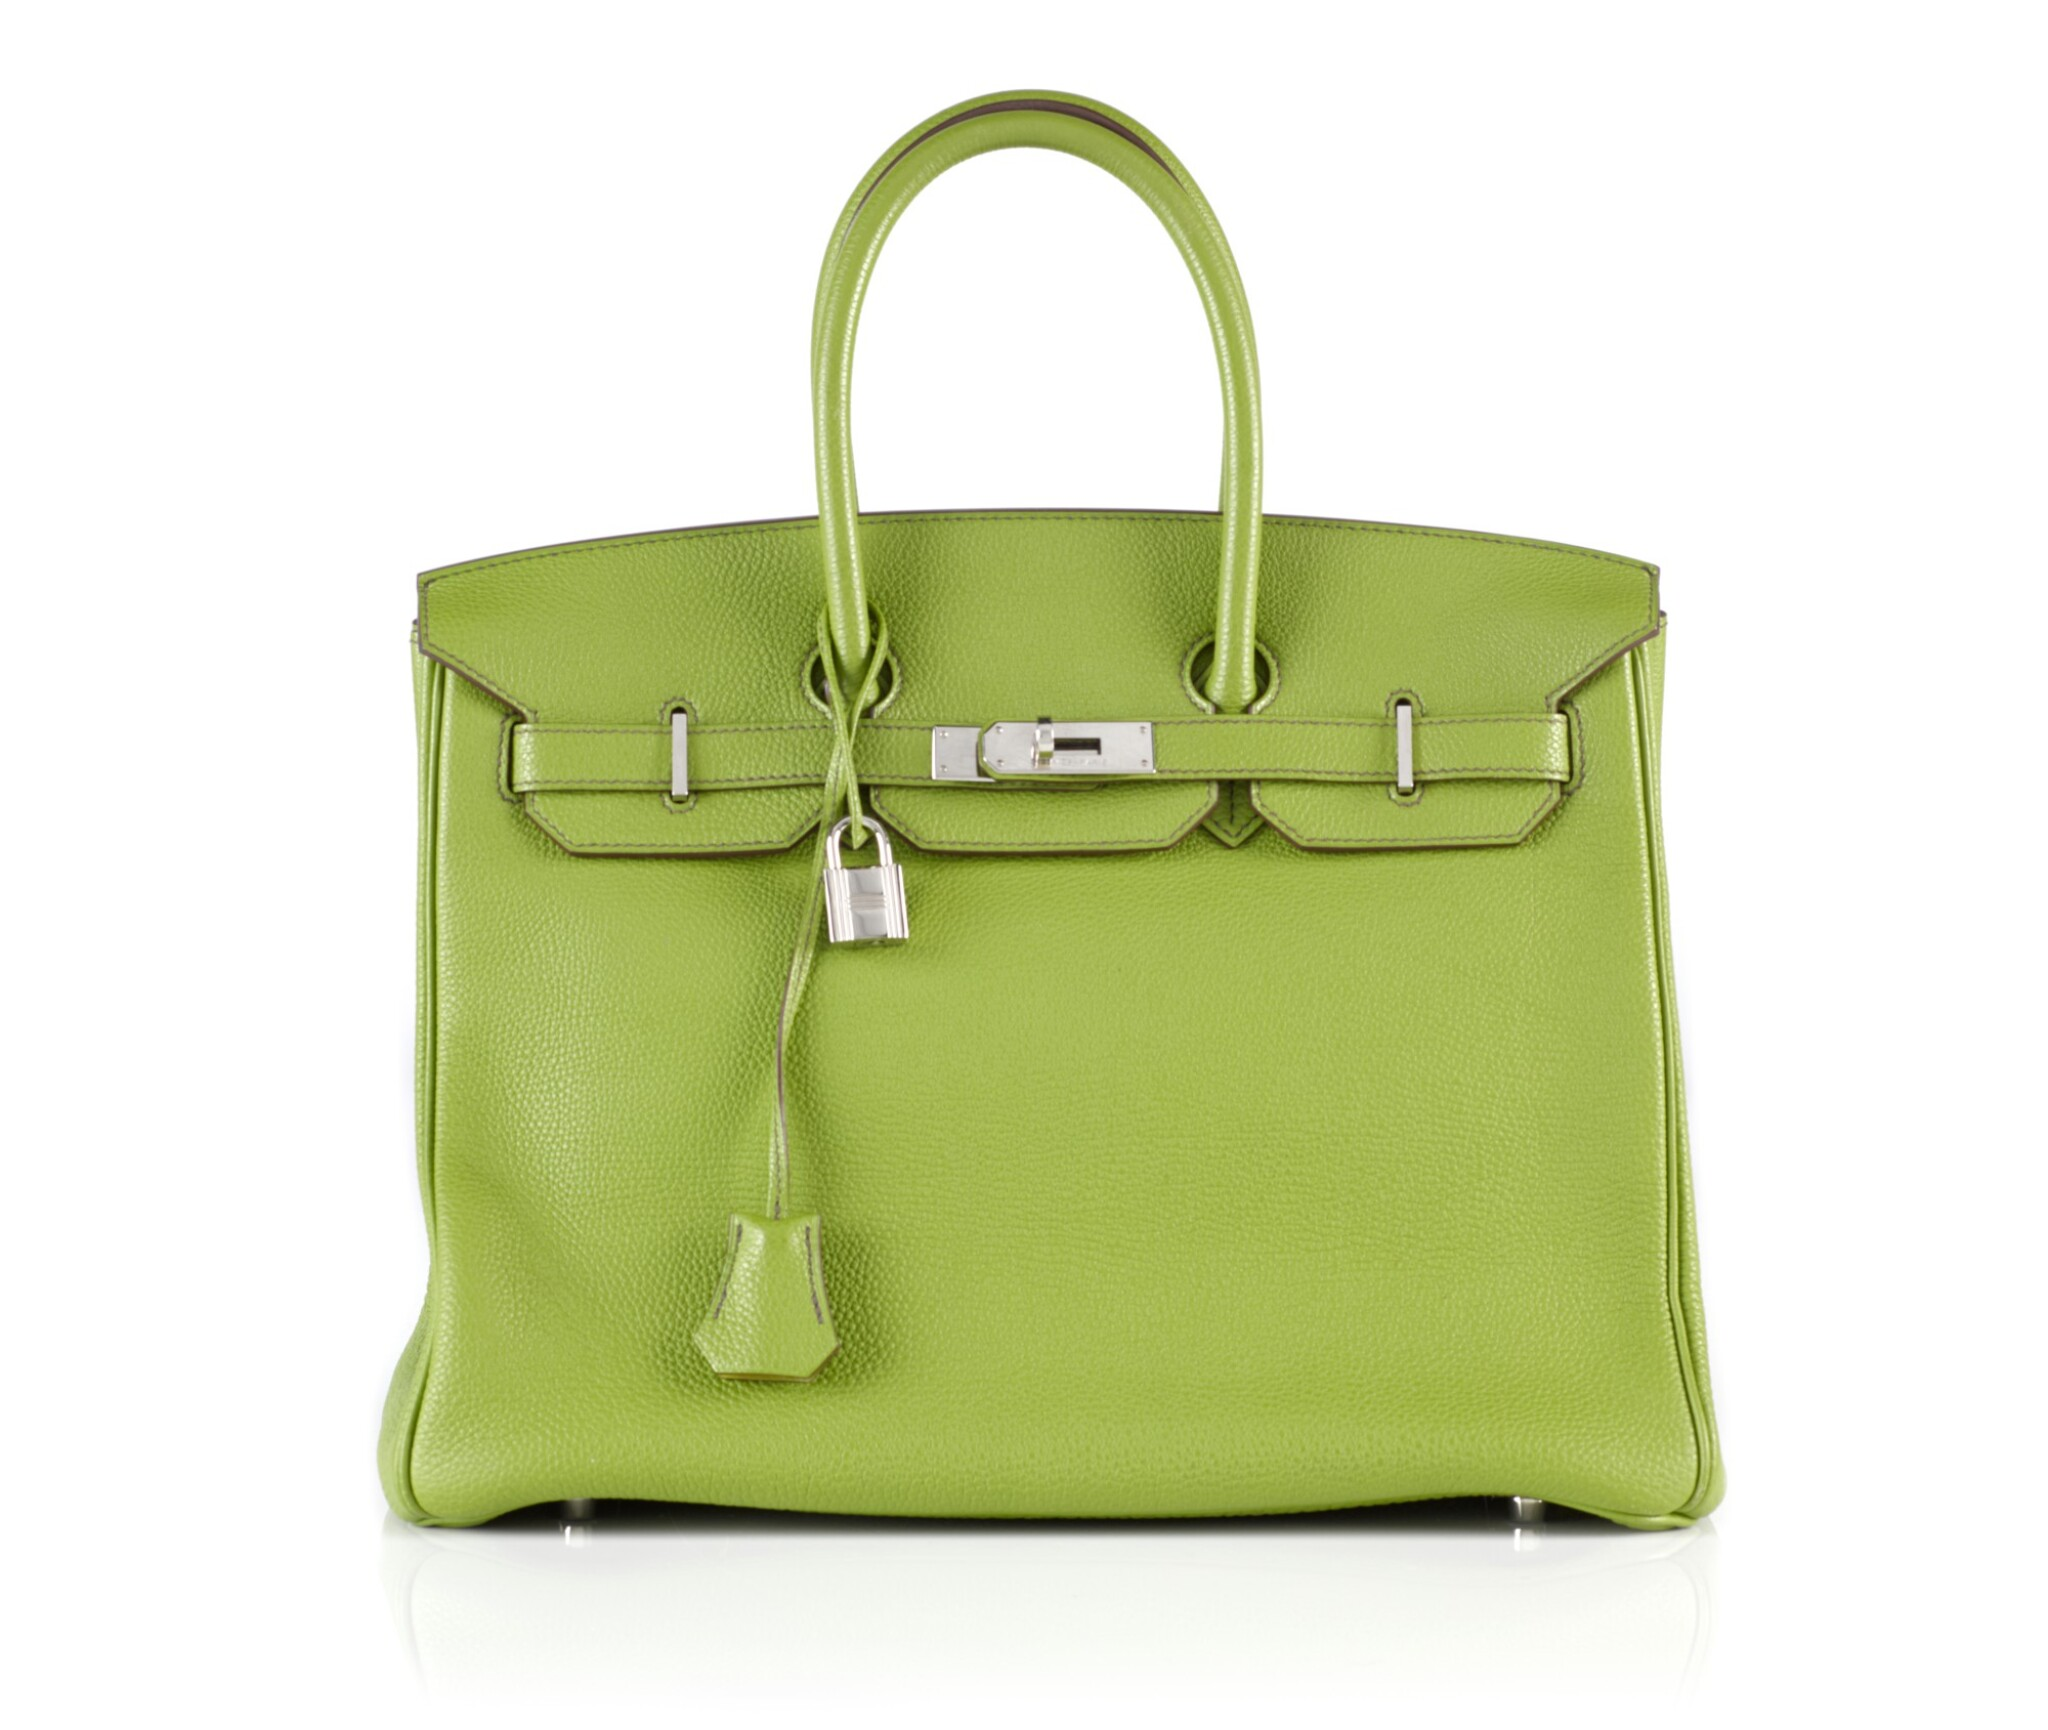 View full screen - View 1 of Lot 10. BIRKIN 35 VERT ANIS COLOUR IN TOGO LEATHER WITH PALLADIUM HARDWARE. HERMÈS, 2011 .